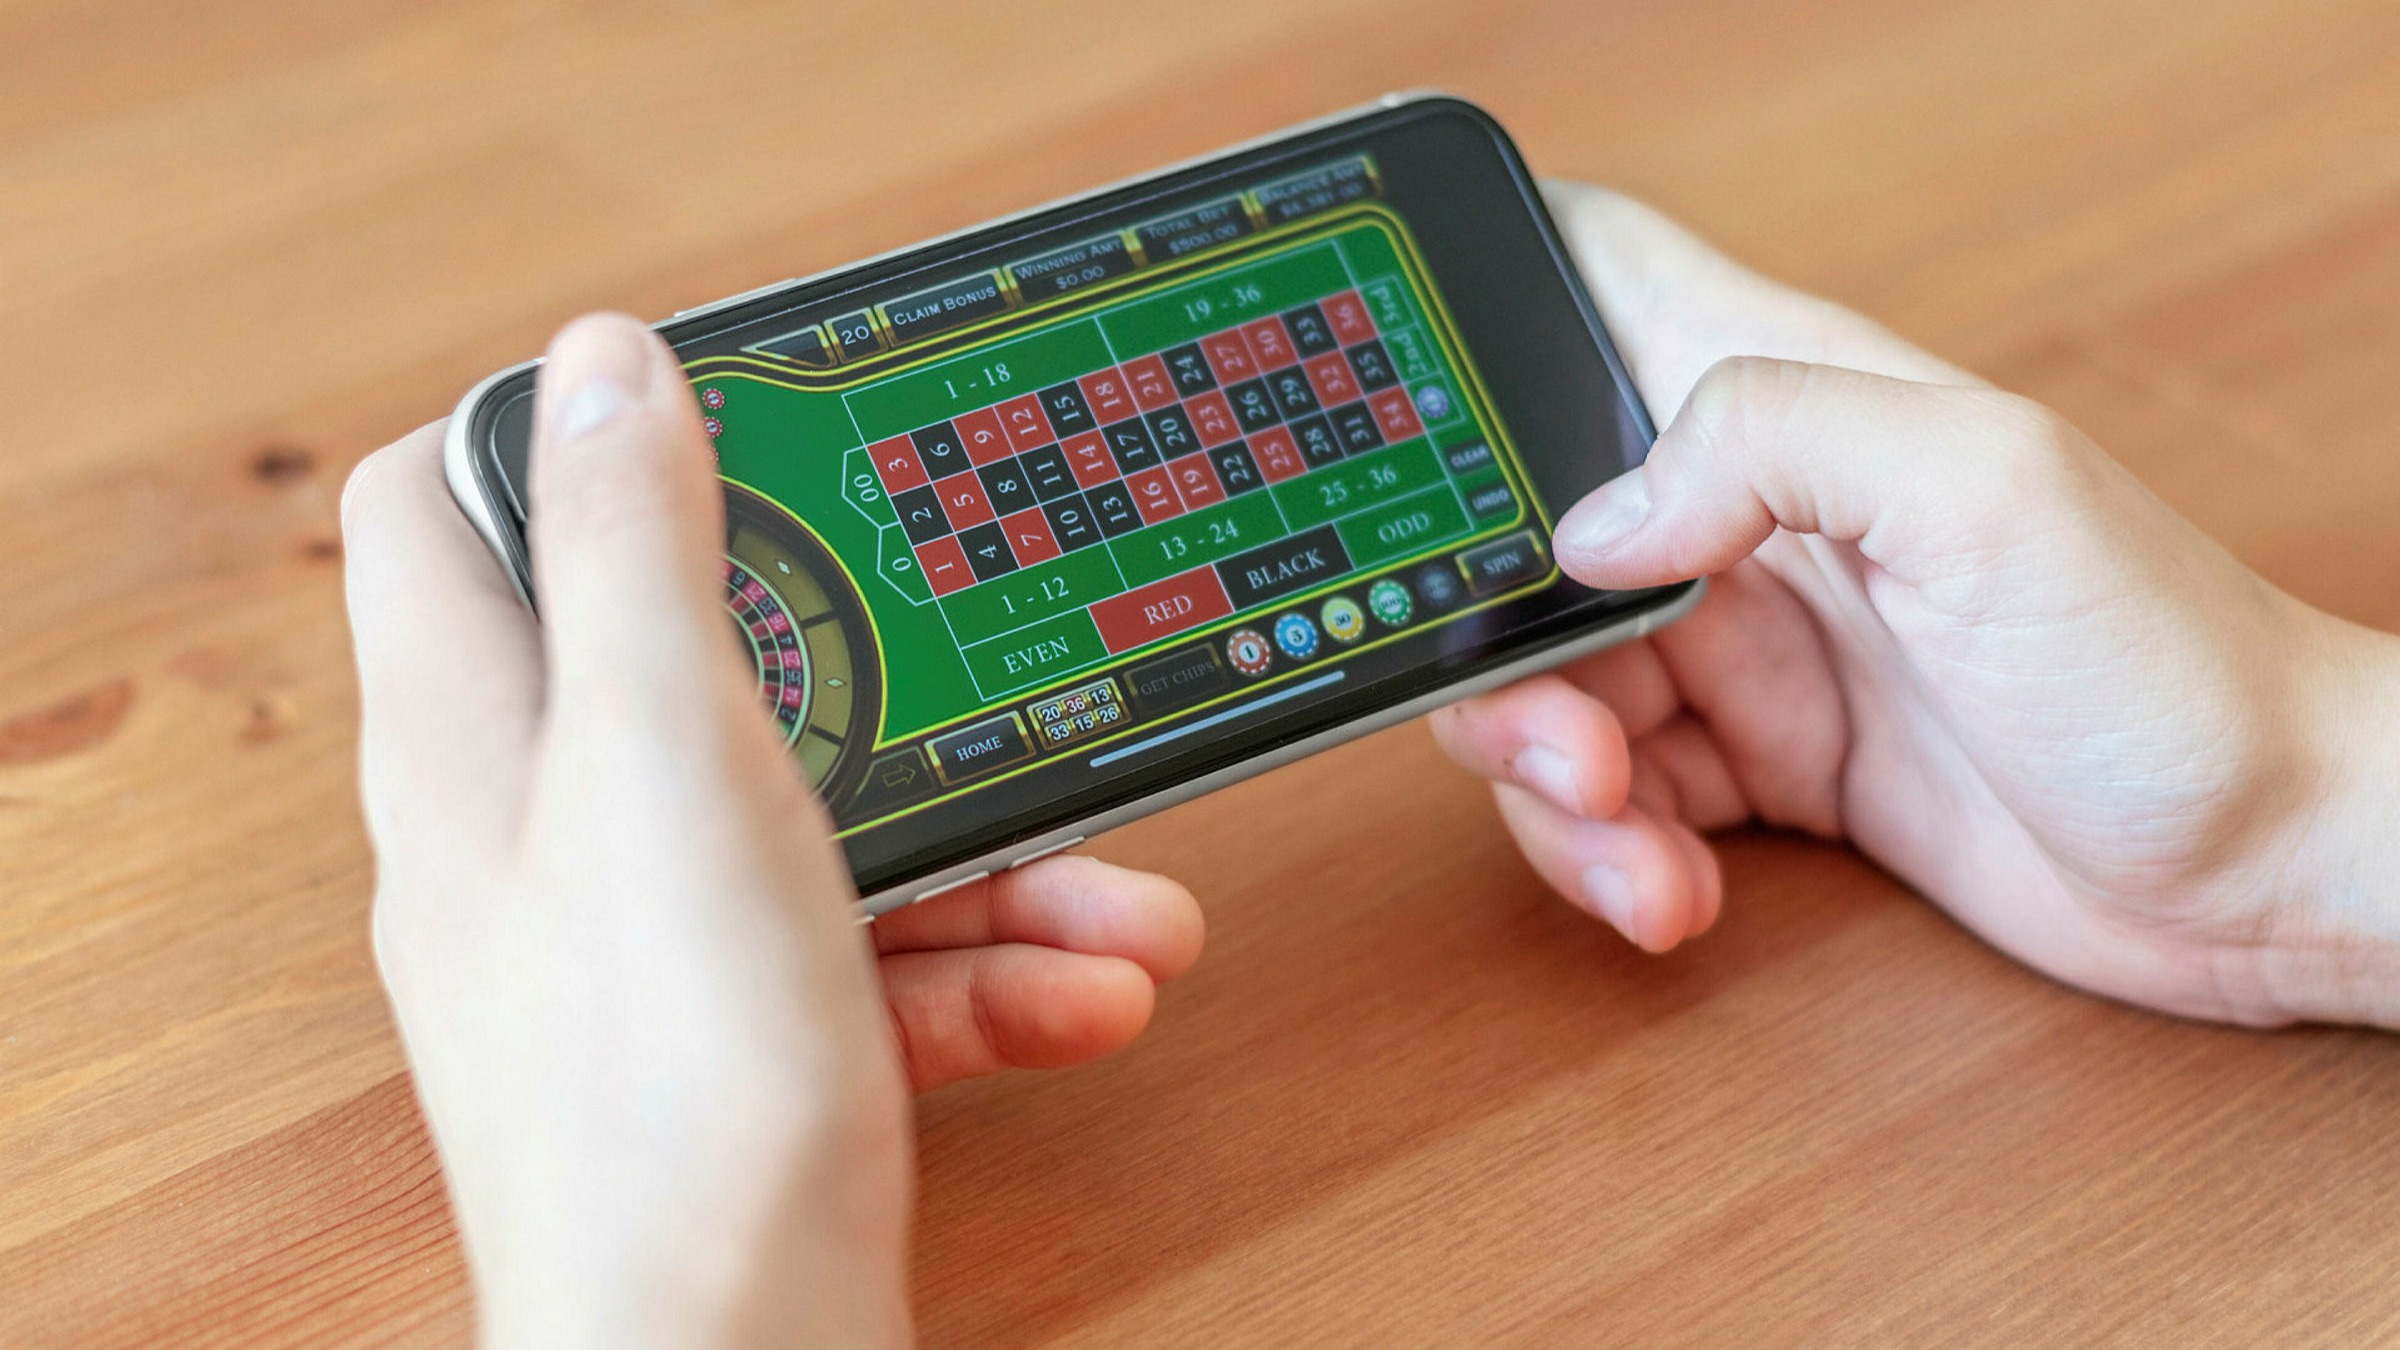 Mobile Gaming Is The Latest Problem In Recent UK Report